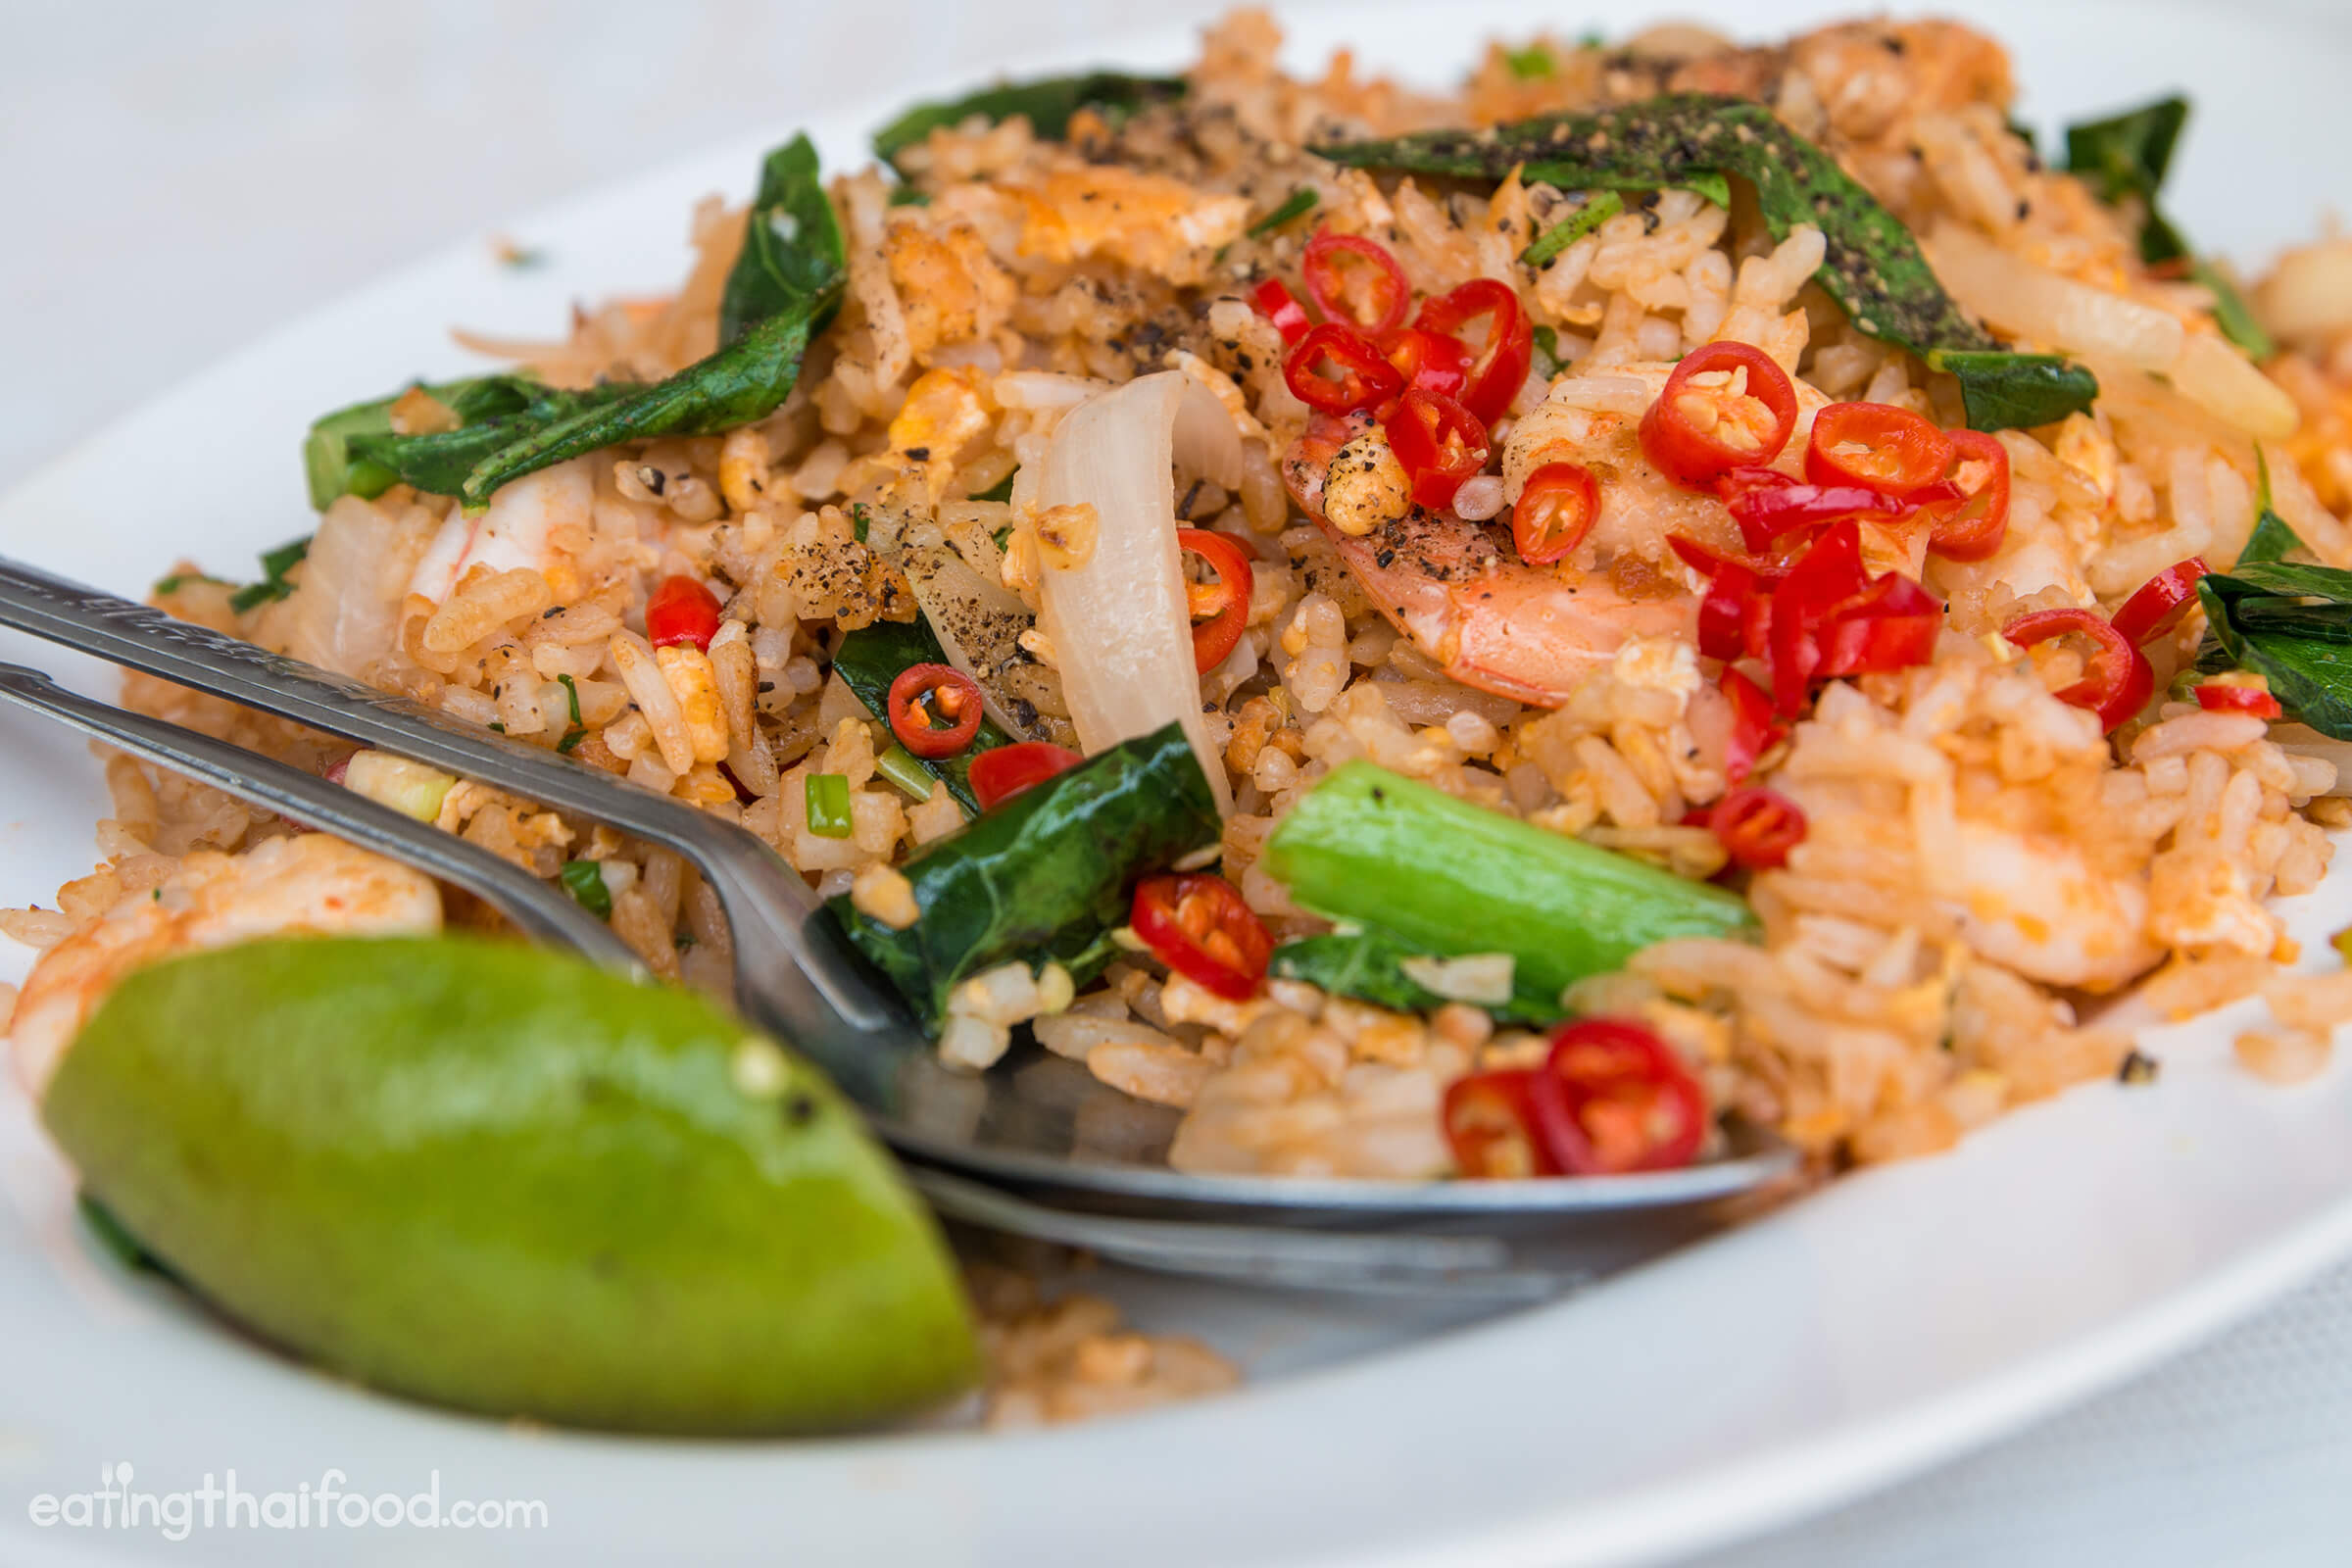 Authentic thai fried rice recipe street food style thai fried rice recipe ccuart Images